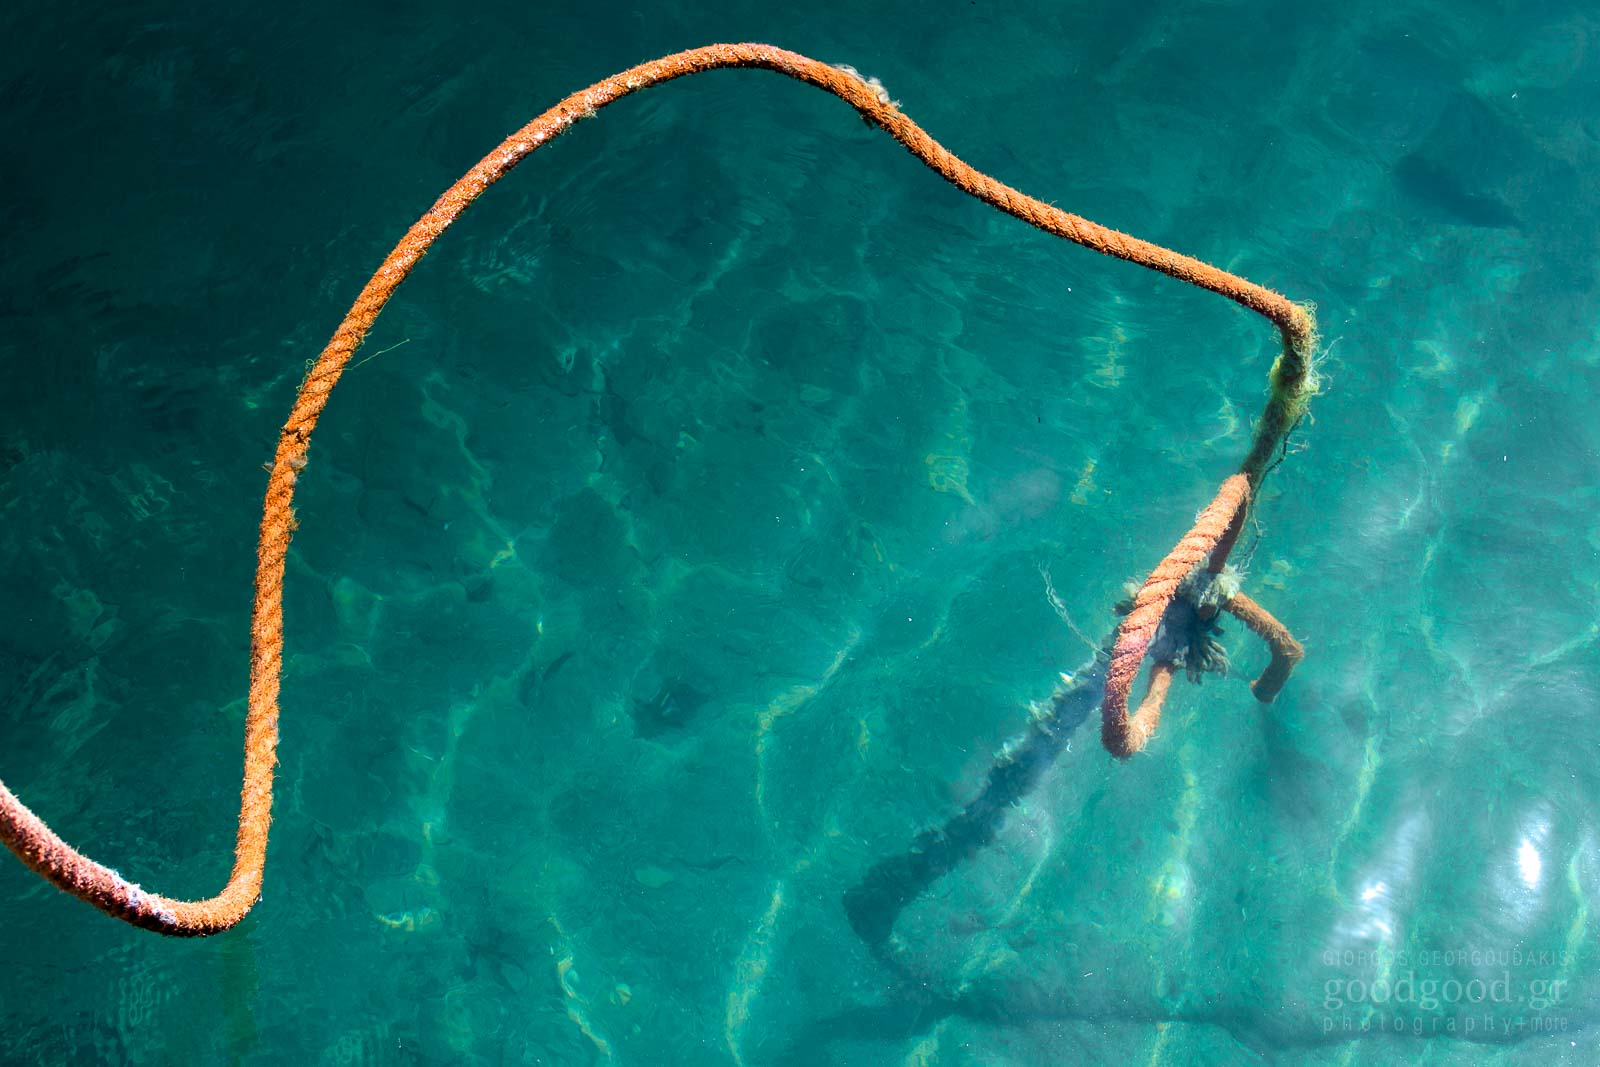 Photo of a rope sinking in the blue water